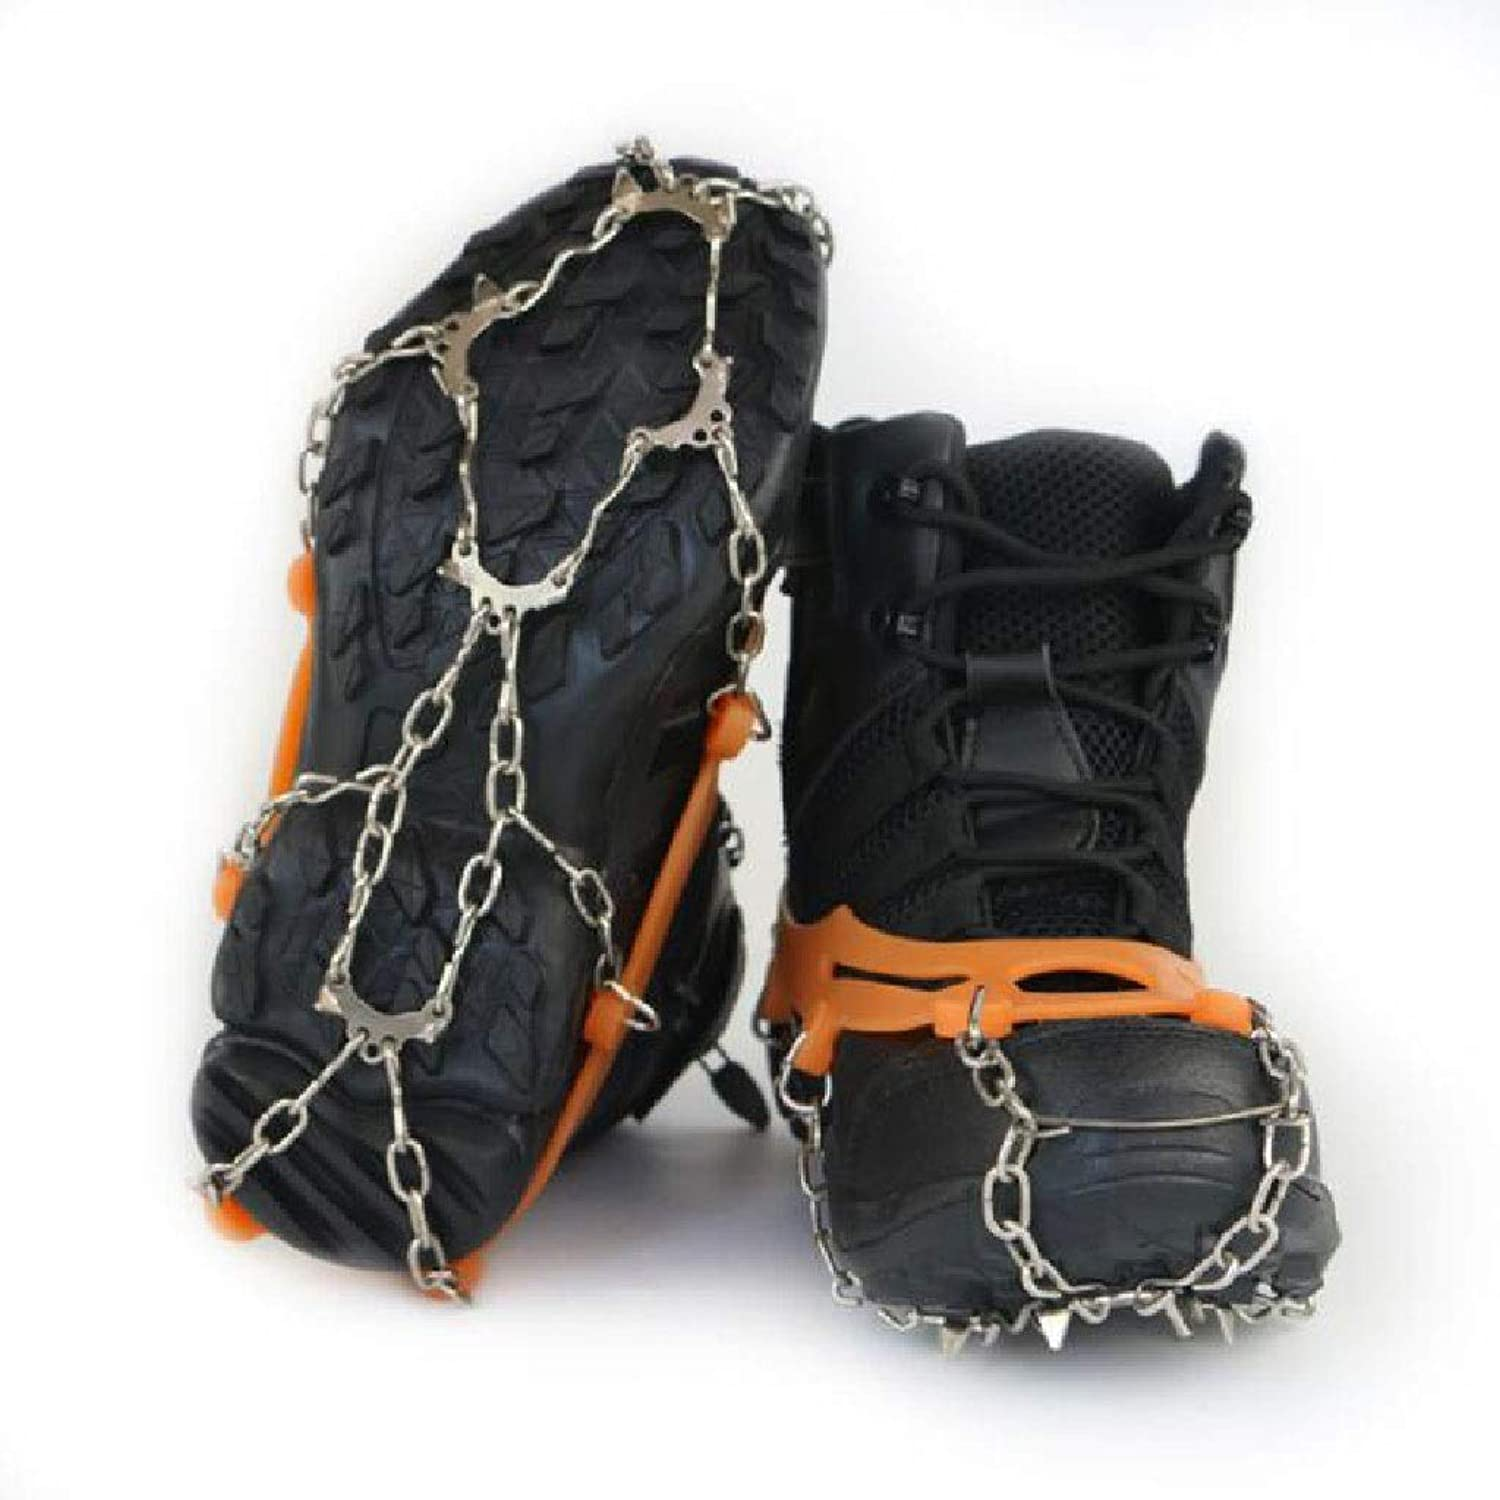 Crampons AntiSkid shoes Covers Snow Climbing Spikes Chain 11 Teeth Simple Outdoor Equipment Ice Caught Ultra Light Snow Claw Snow Chains (color   orange)